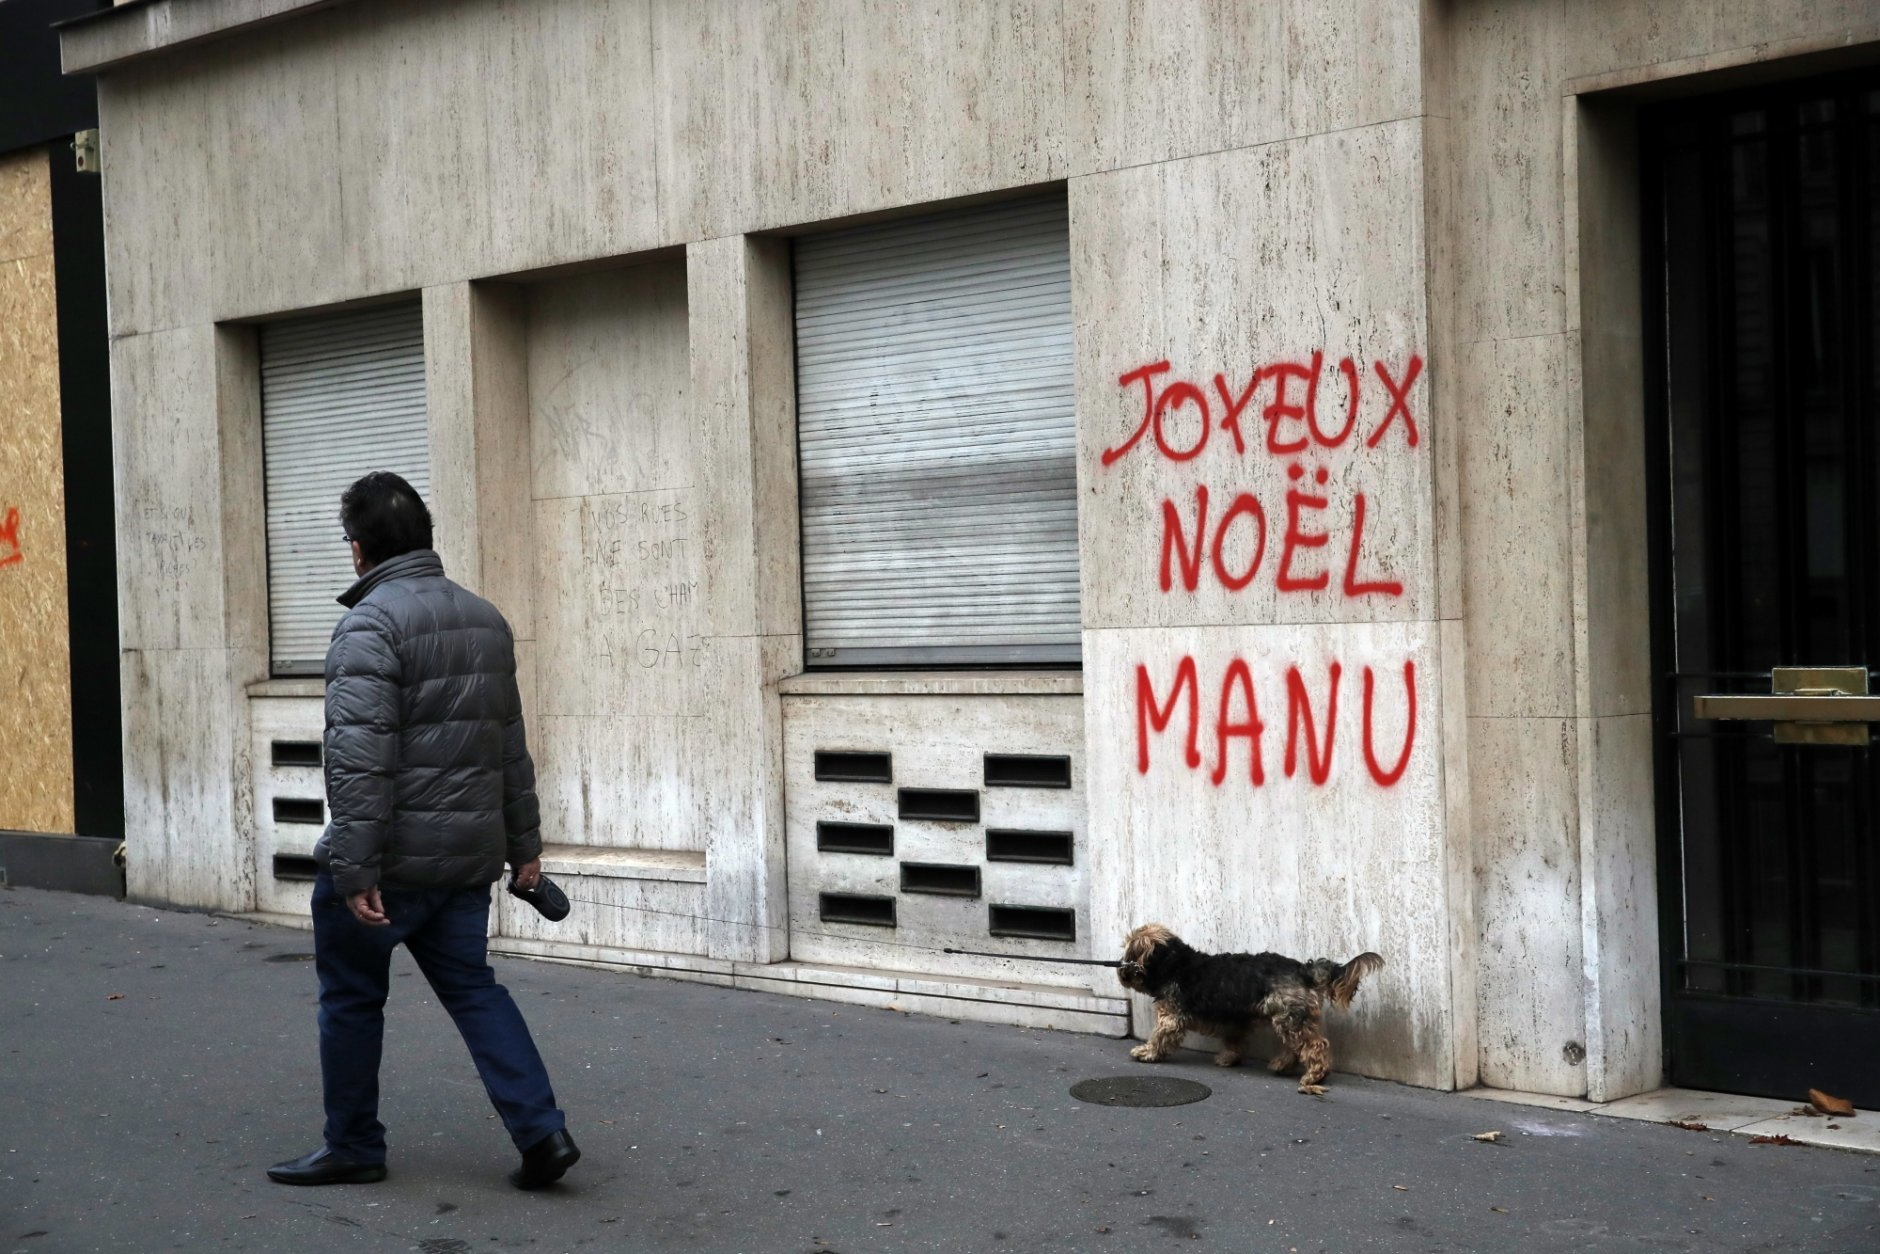 A man walks his dog past a tag reading : Happy Christmas Manu, referring to French President Emmanuel Macron, in Paris, Sunday, Dec. 9, 2018. Paris monuments reopened, cleanup workers cleared debris and shop owners tried to put the city on its feet again Sunday, after running battles between yellow-vested protesters and riot police left 71 injured and caused widespread damage to the French capital. (AP Photo/Christophe Ena)